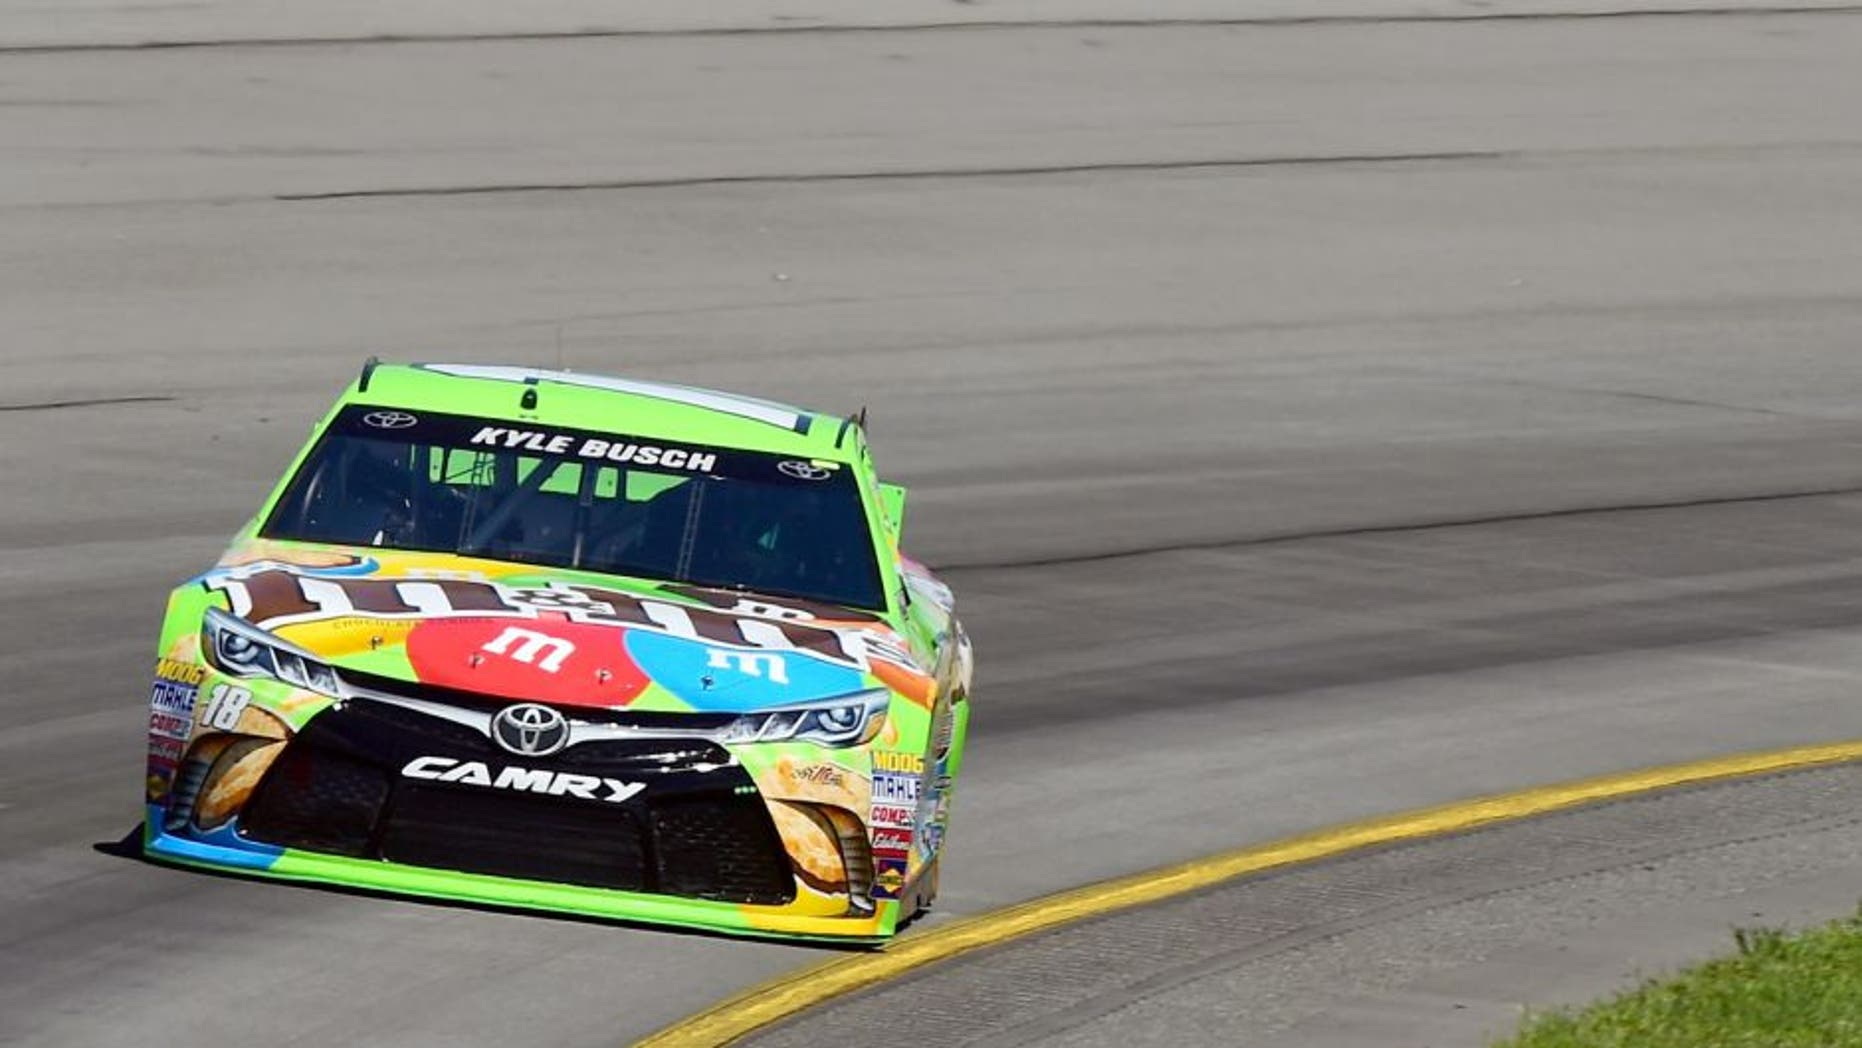 Kyle Busch, driver of the #18 M&M's Crispy Toyota, practices for the NASCAR Sprint Cup Series Windows 10 400 at Pocono Raceway on July 31, 2015 in Long Pond, Pennsylvania. (Photo by Jared C. Tilton/Getty Images)